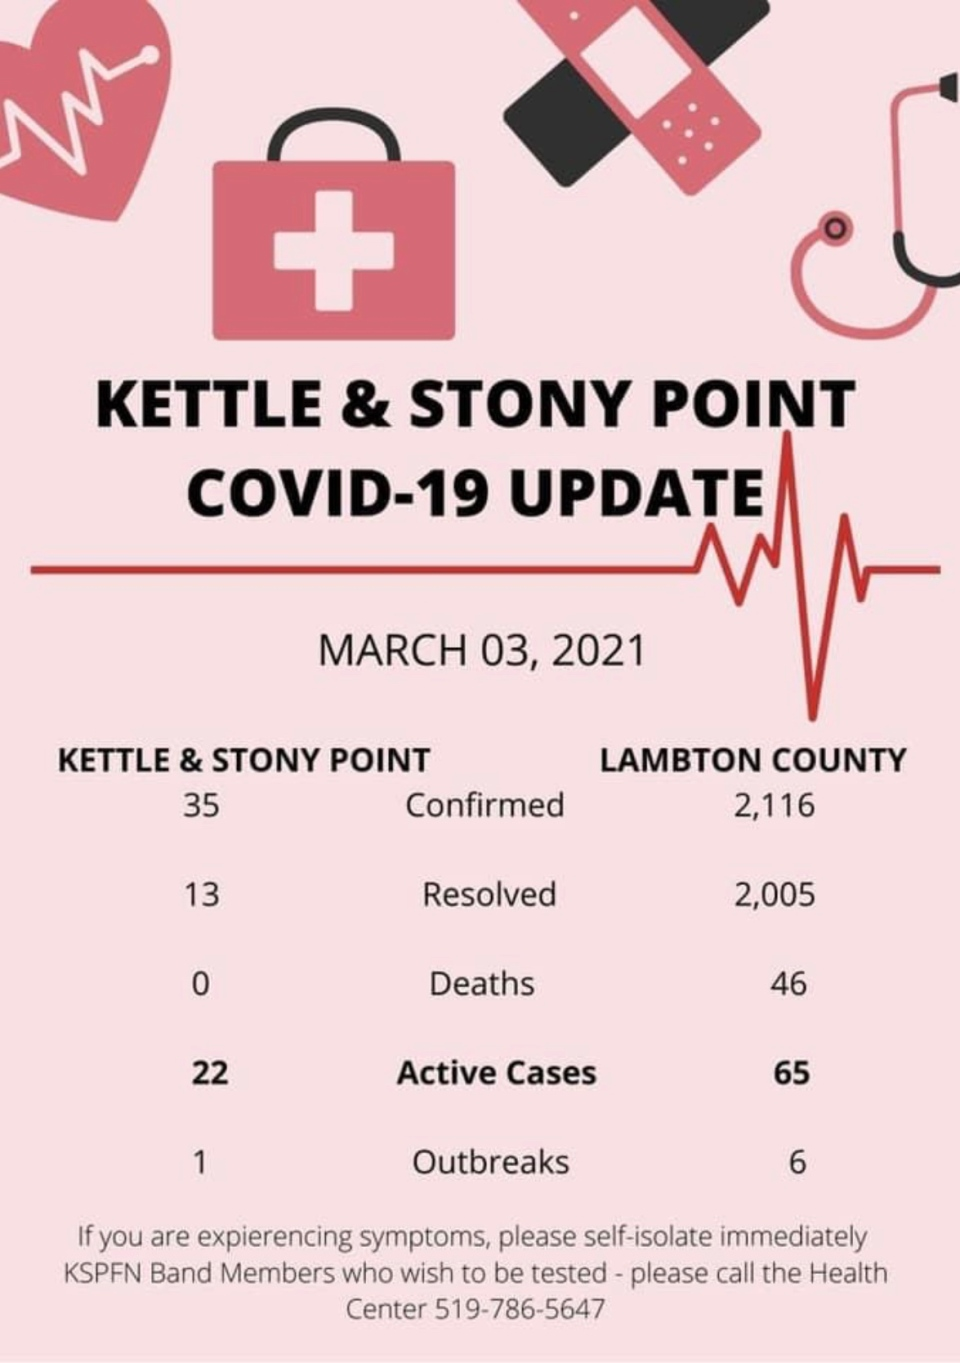 Kettle and Stony Point COVID-19 numbers